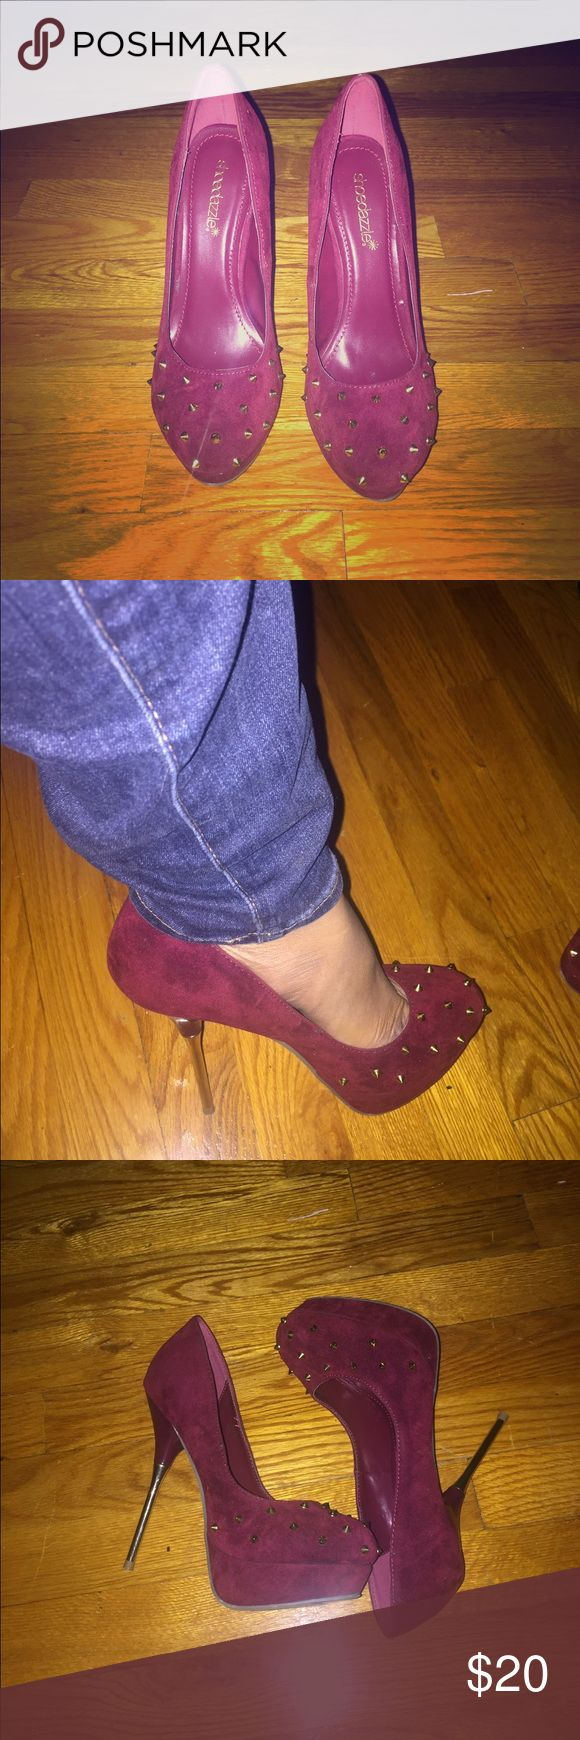 Shoe Dazzle red pumps 👠 4 1/2 inch heel. Suede material with gold studs. Never worn. Size 8 Shoe Dazzle Shoes Heels